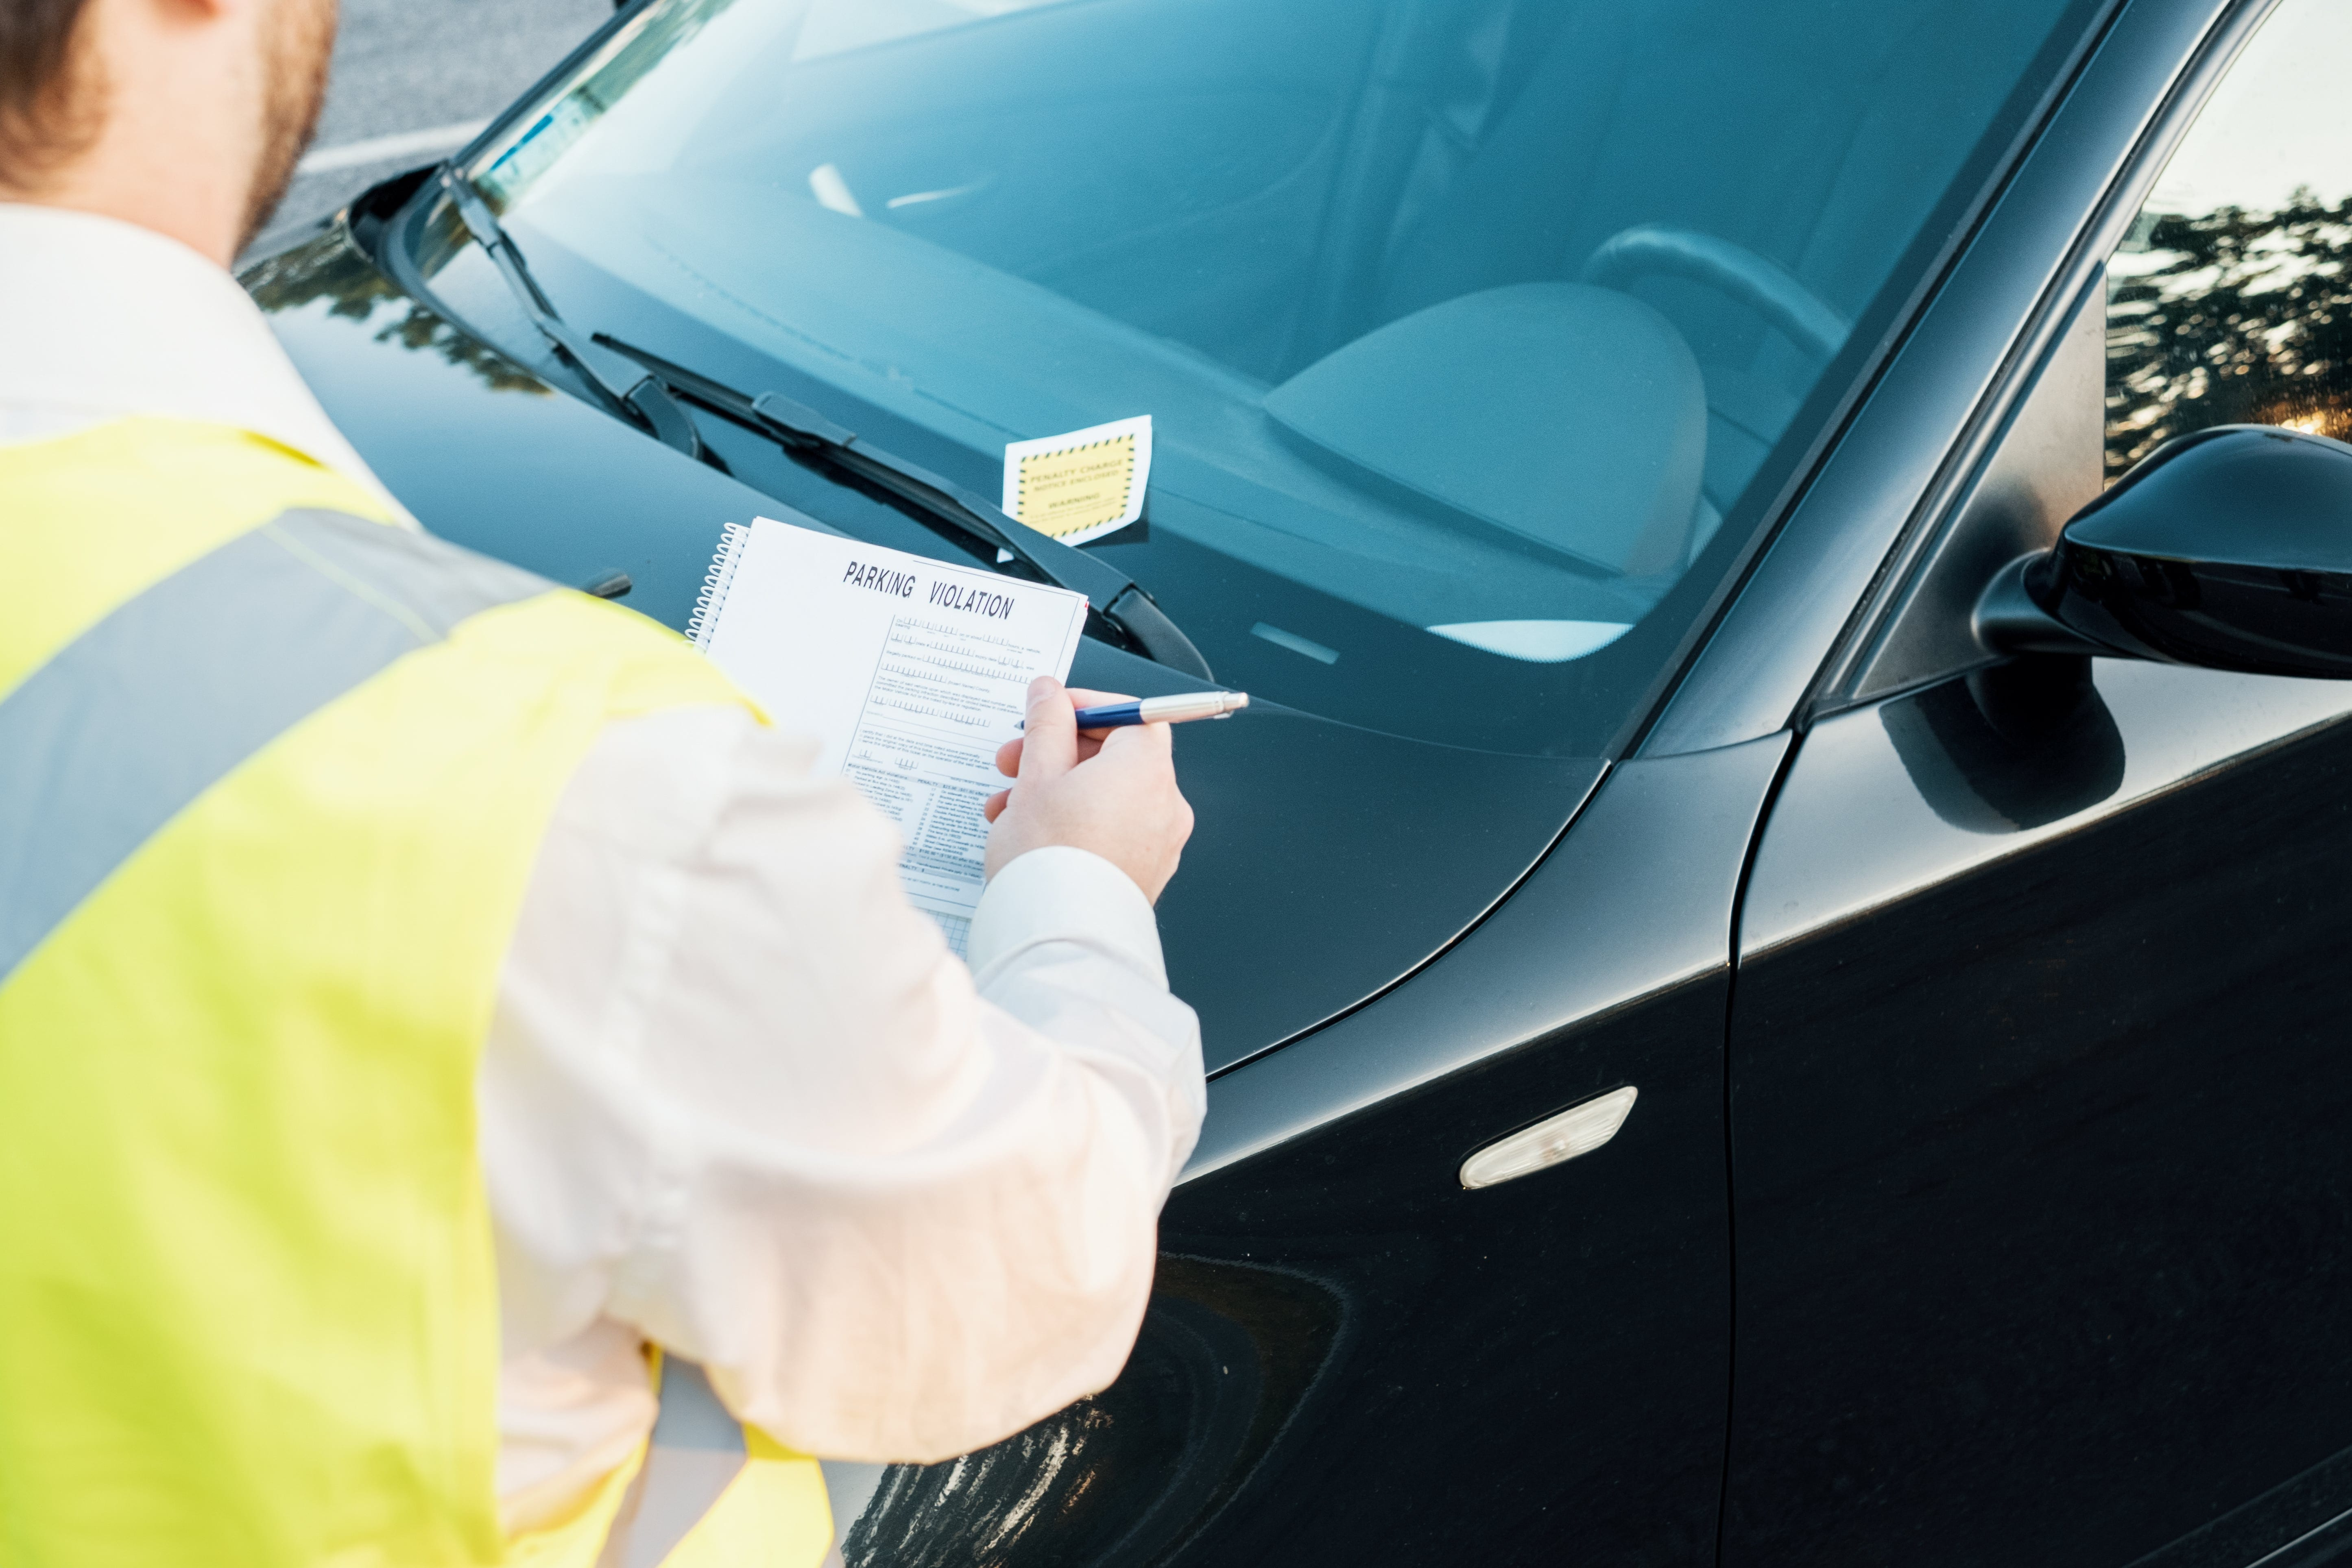 Flex Point Security guard writing a parking infraction notice as he is licensed as a Contract Certified Officer